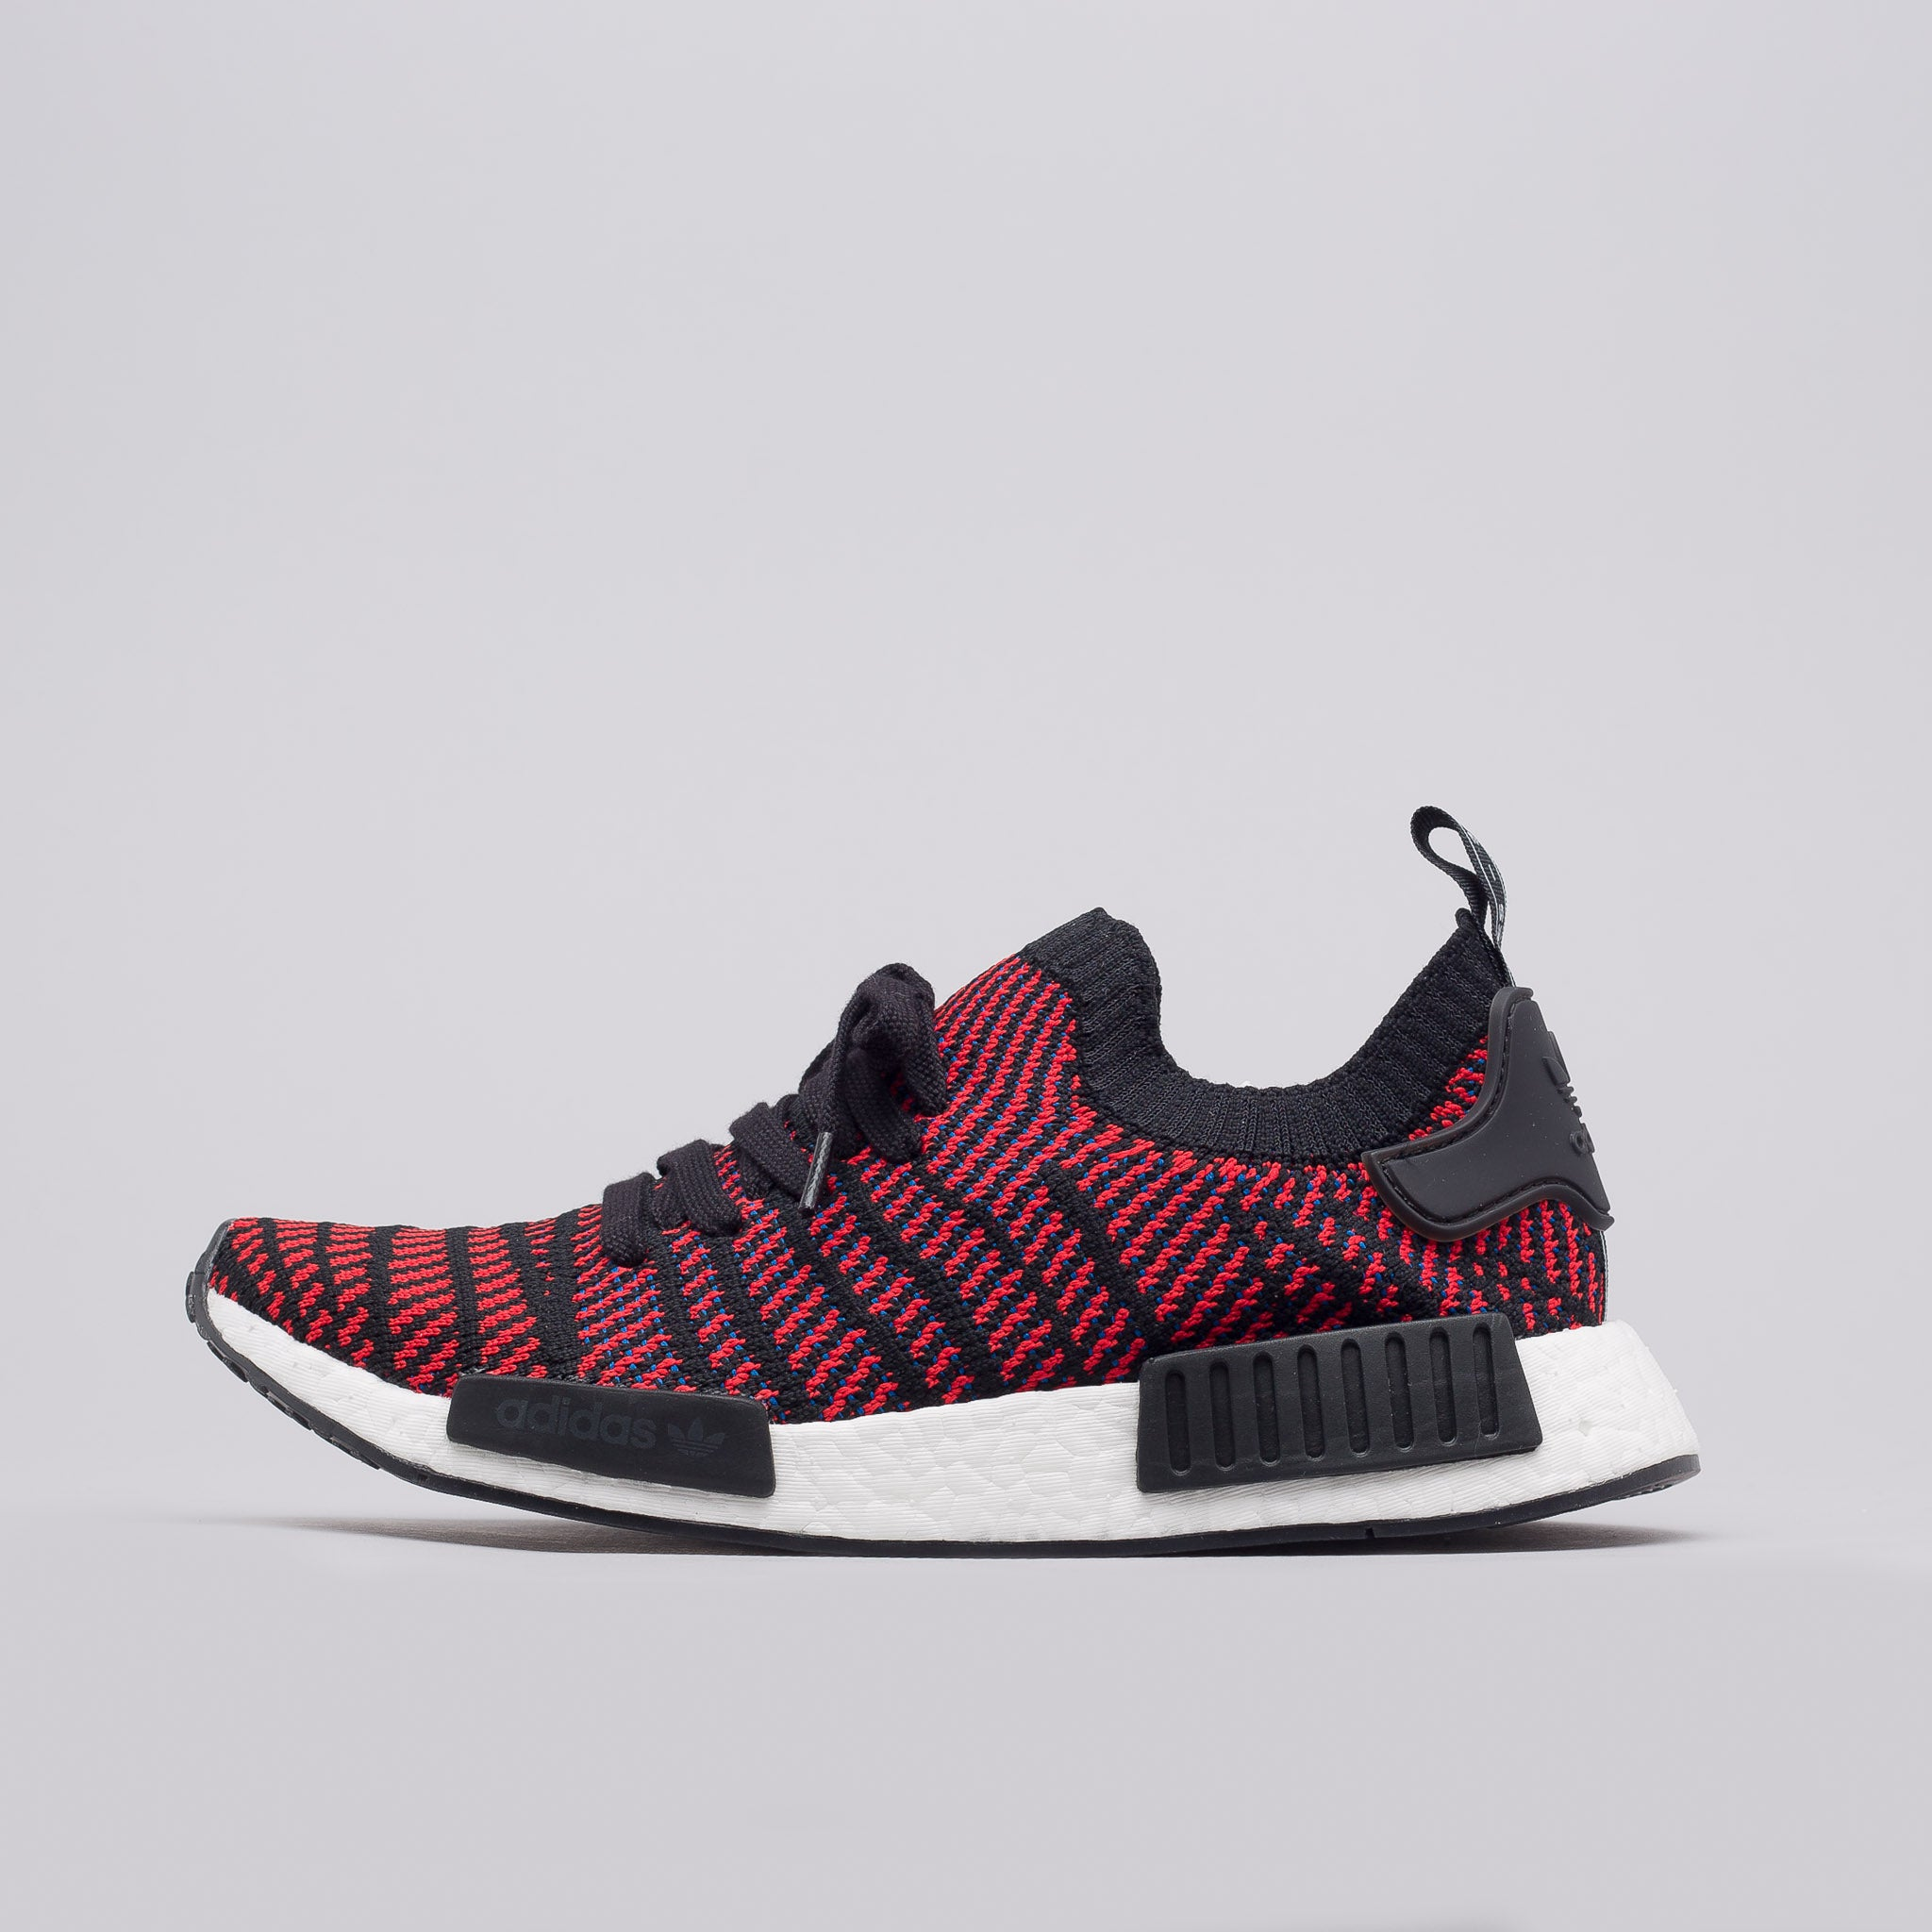 Adidas NMD R1 Vapor Pink Review NEW RELEASE Try On